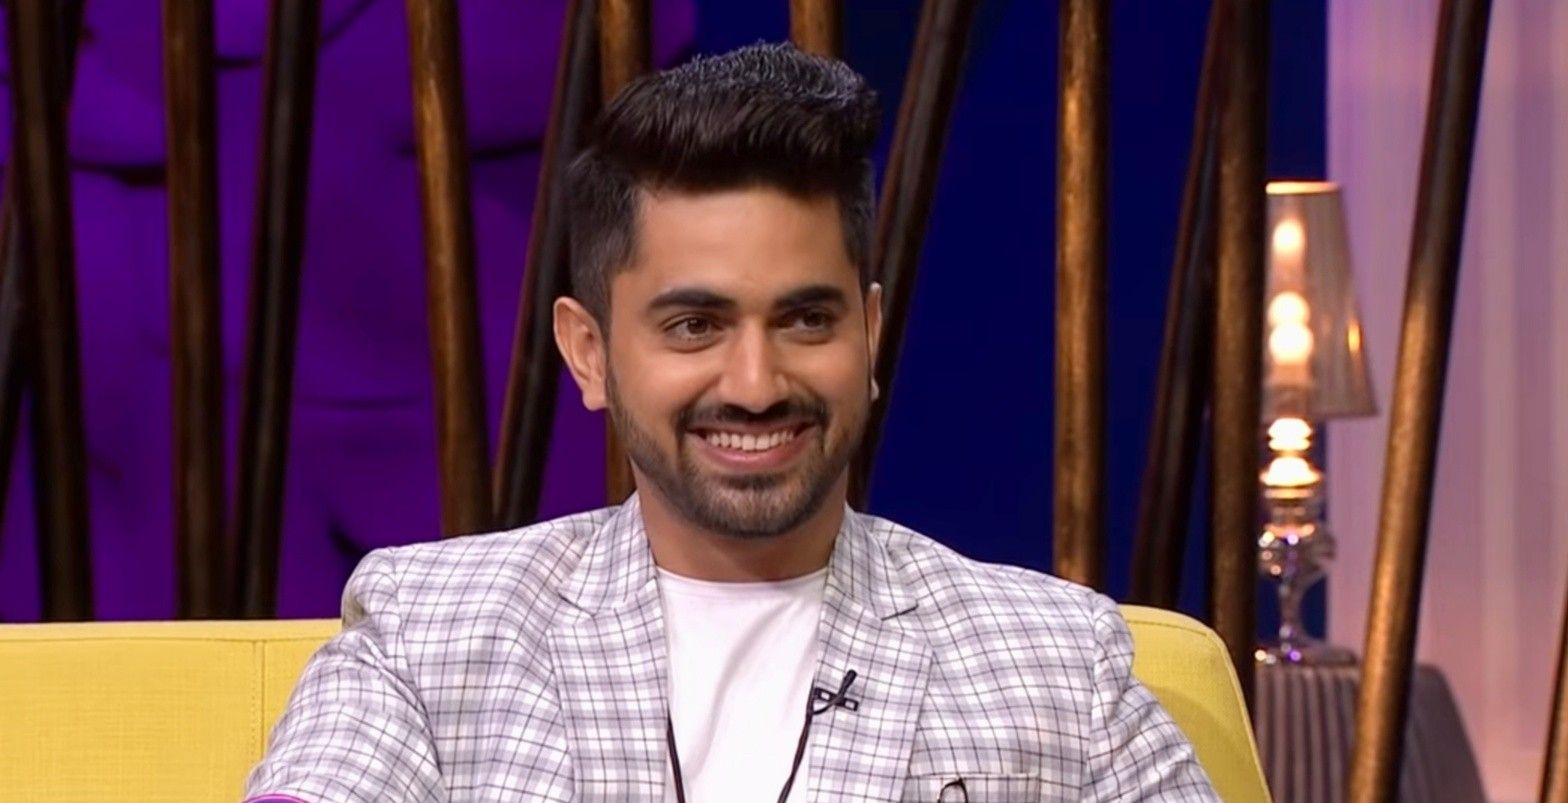 Pin by Matteo Brewer on Hair gives me life | Zain imam ...